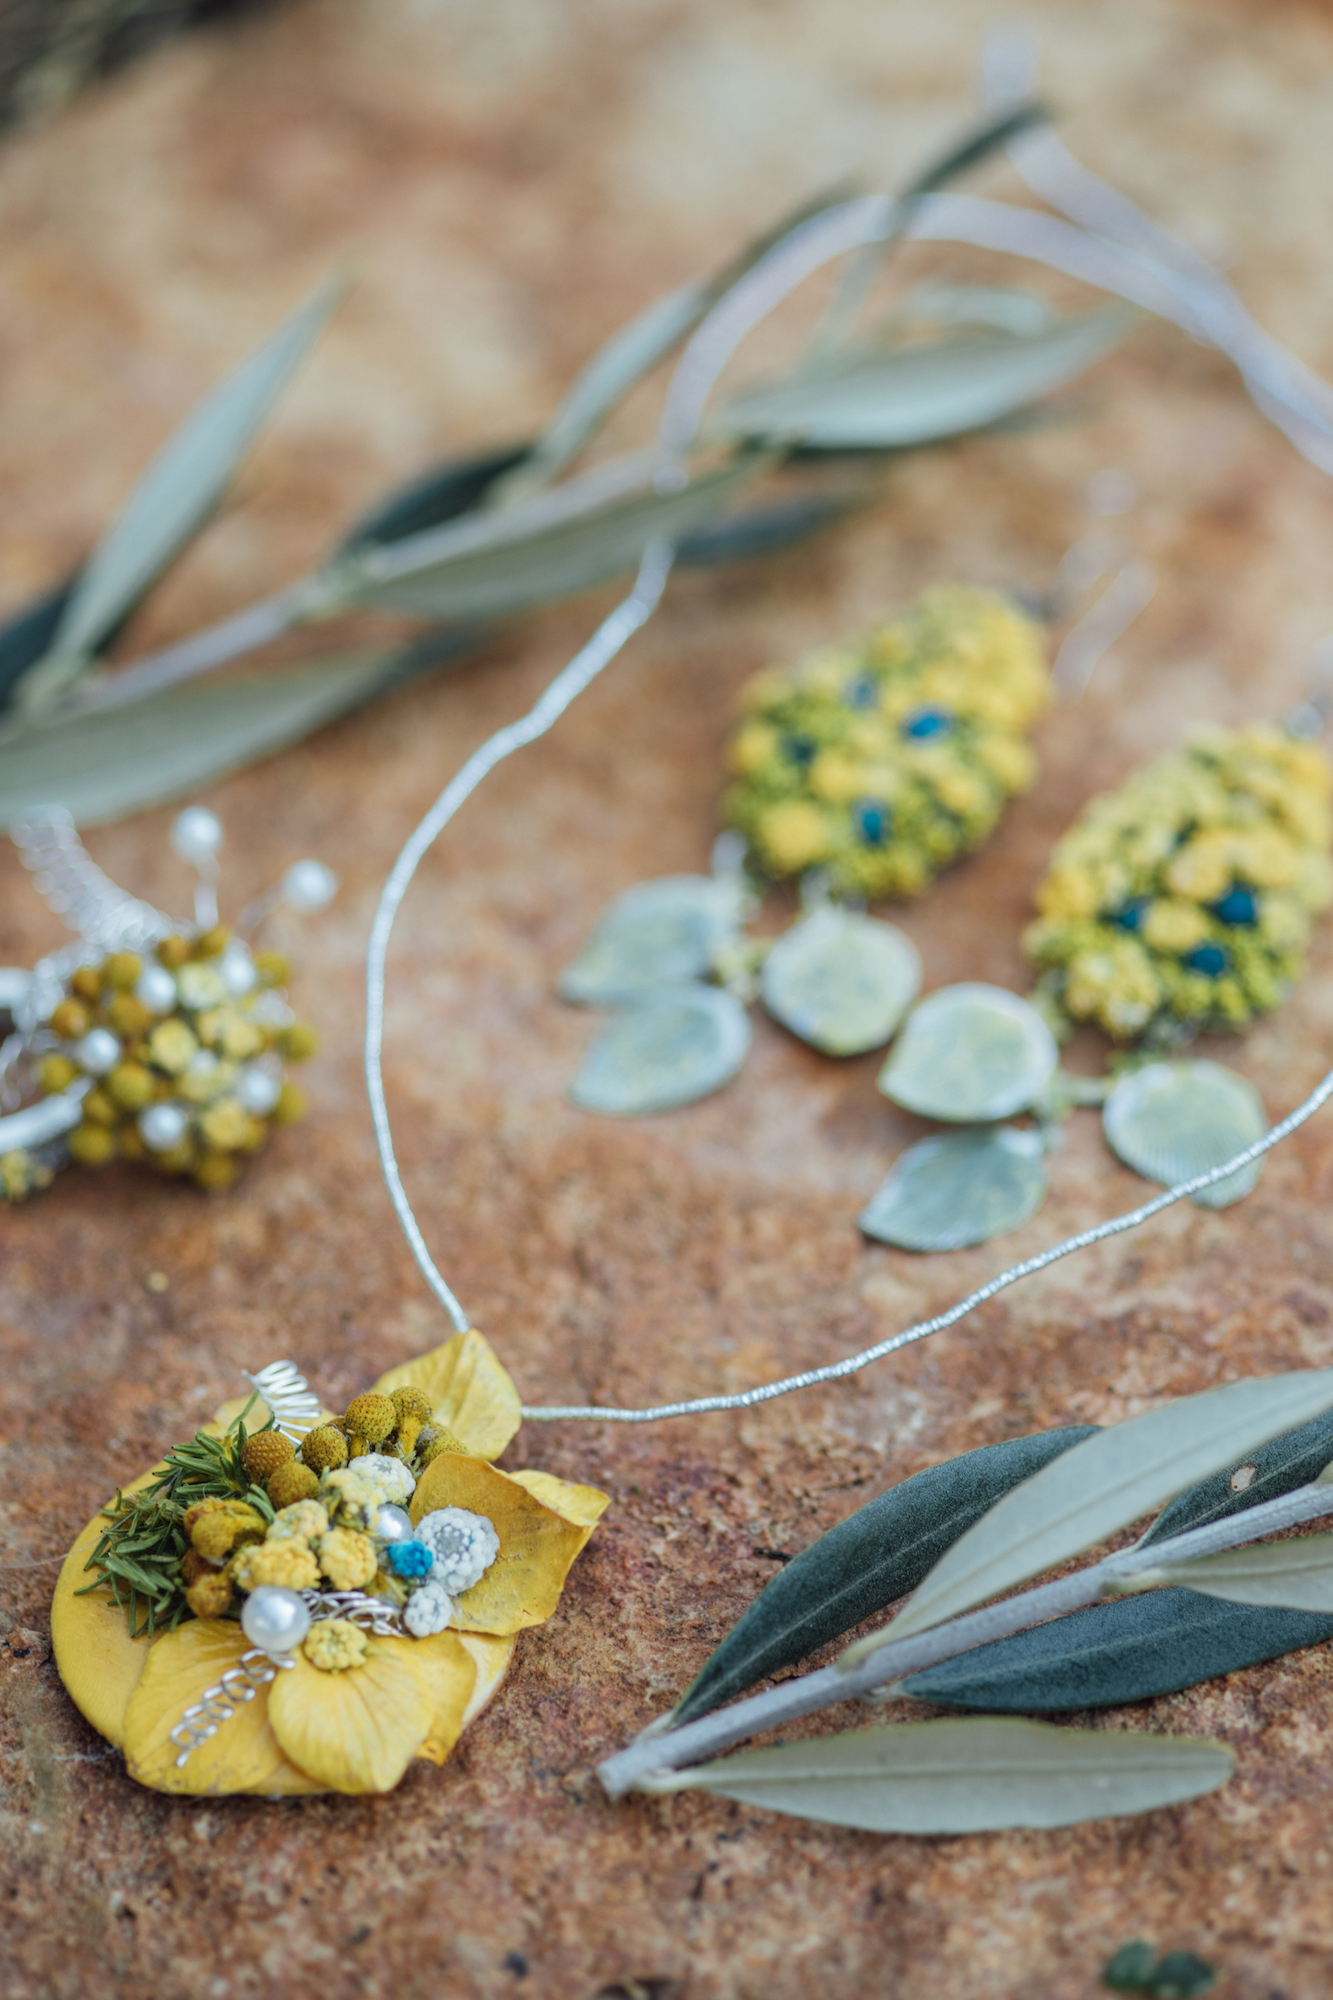 Handmade wedding jewelry set from a Lemon Yellow Garden Wedding Styled Shoot in Rome Italy - by Jess Palatucci Photography - as seen on www.BrendasWeddingBlog.com